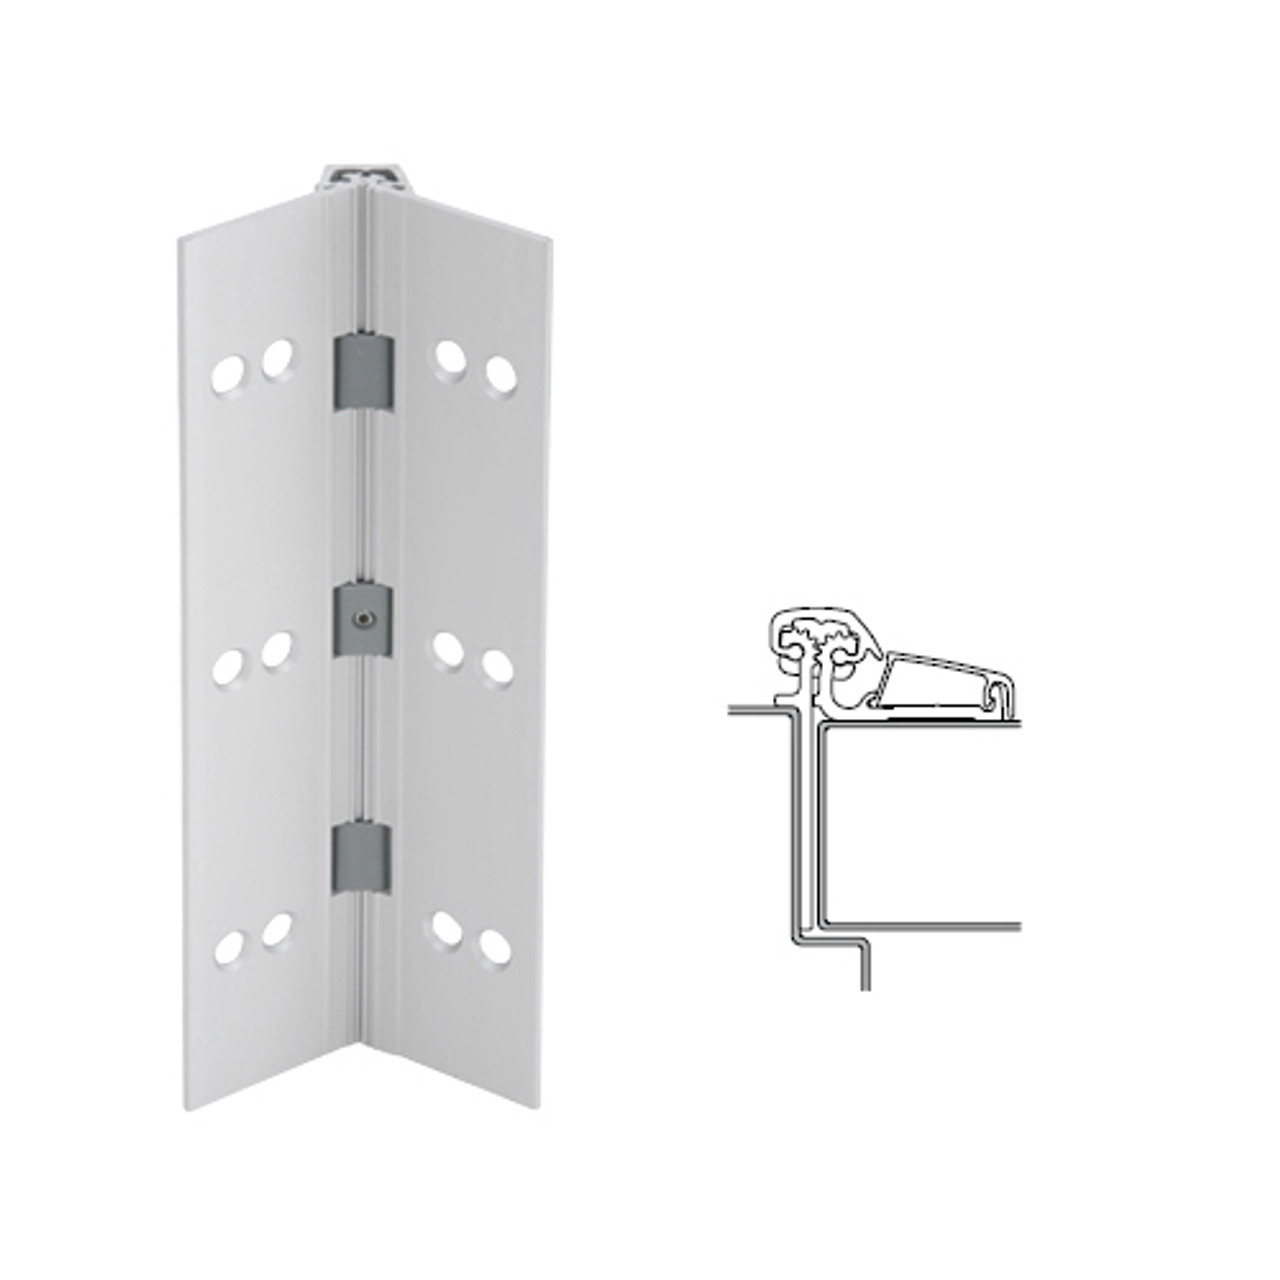 054XY-US28-95-TEKWD IVES Adjustable Half Surface Continuous Geared Hinges with Wood Screws in Satin Aluminum